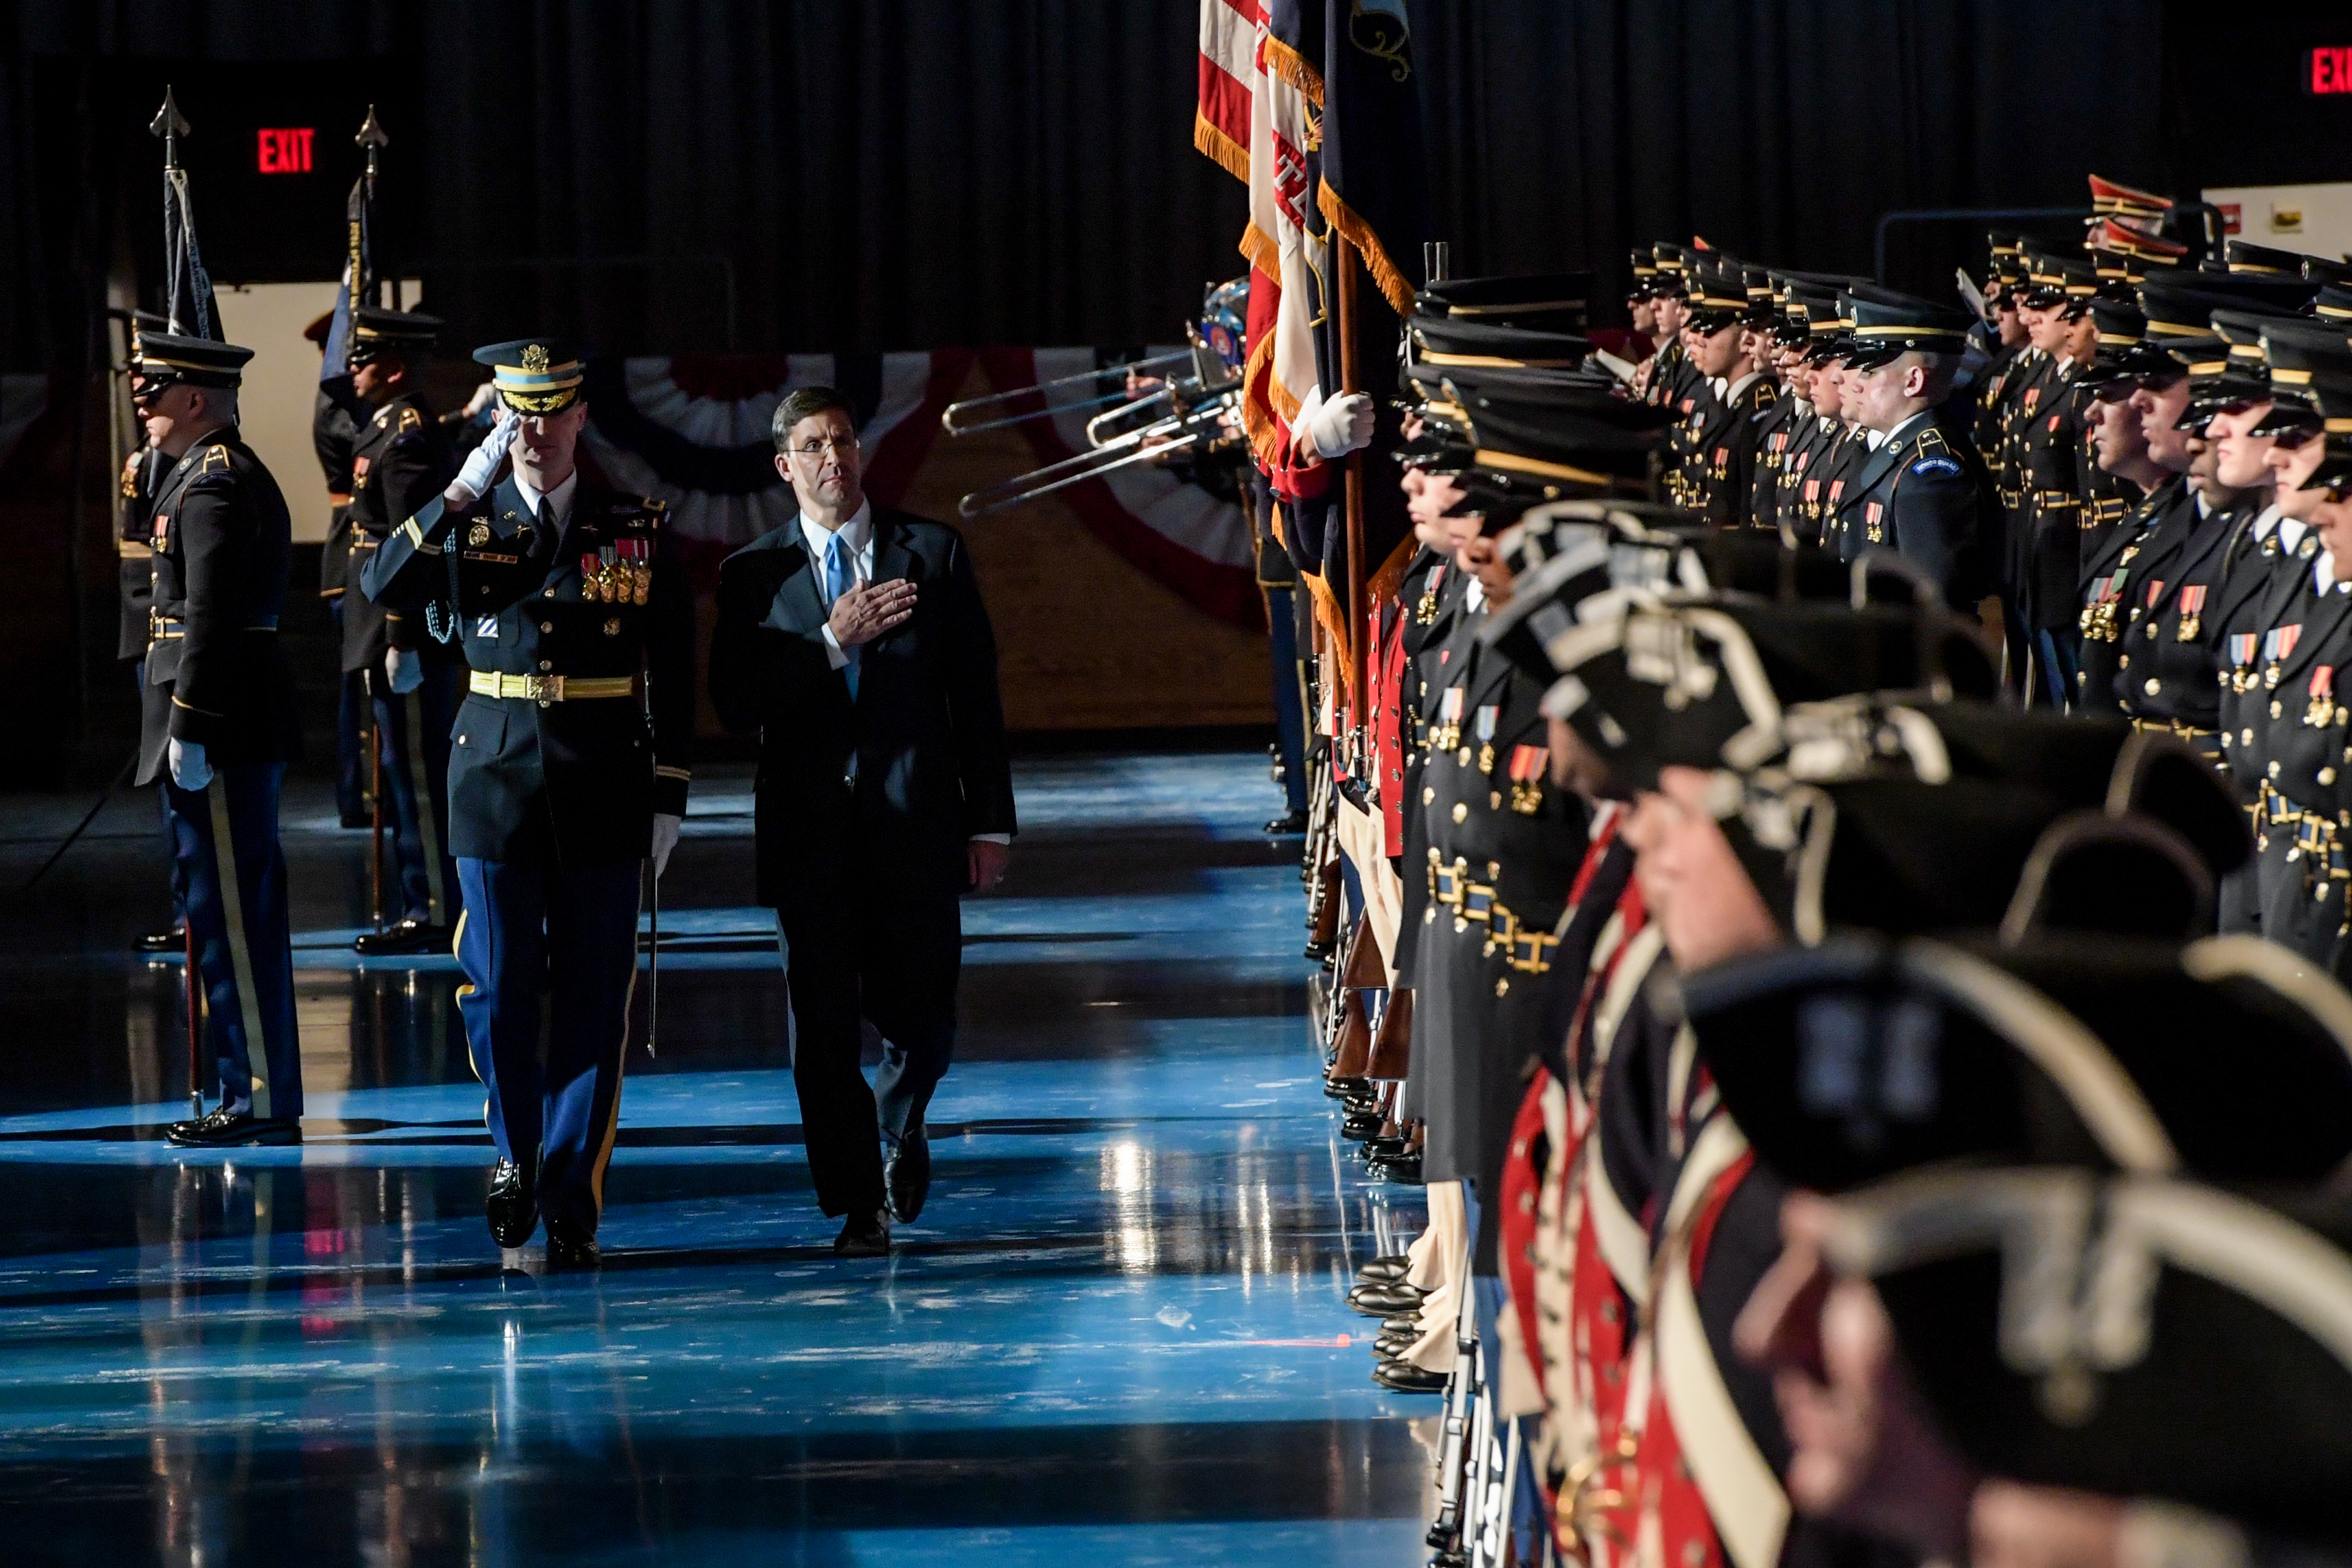 Secretary of the Army Dr. Mark T. Esper attends an Army Full Honors Arrival Ceremony hosted by the Chief of Staff of the U.S. Army Gen. Mark A. Milley at Conmy Hall on Joint Base Myer-Henderson Hall, Arlington, Virginia, Jan. 5, 2018. (U.S. Army photo by Spc. Anna Pol)